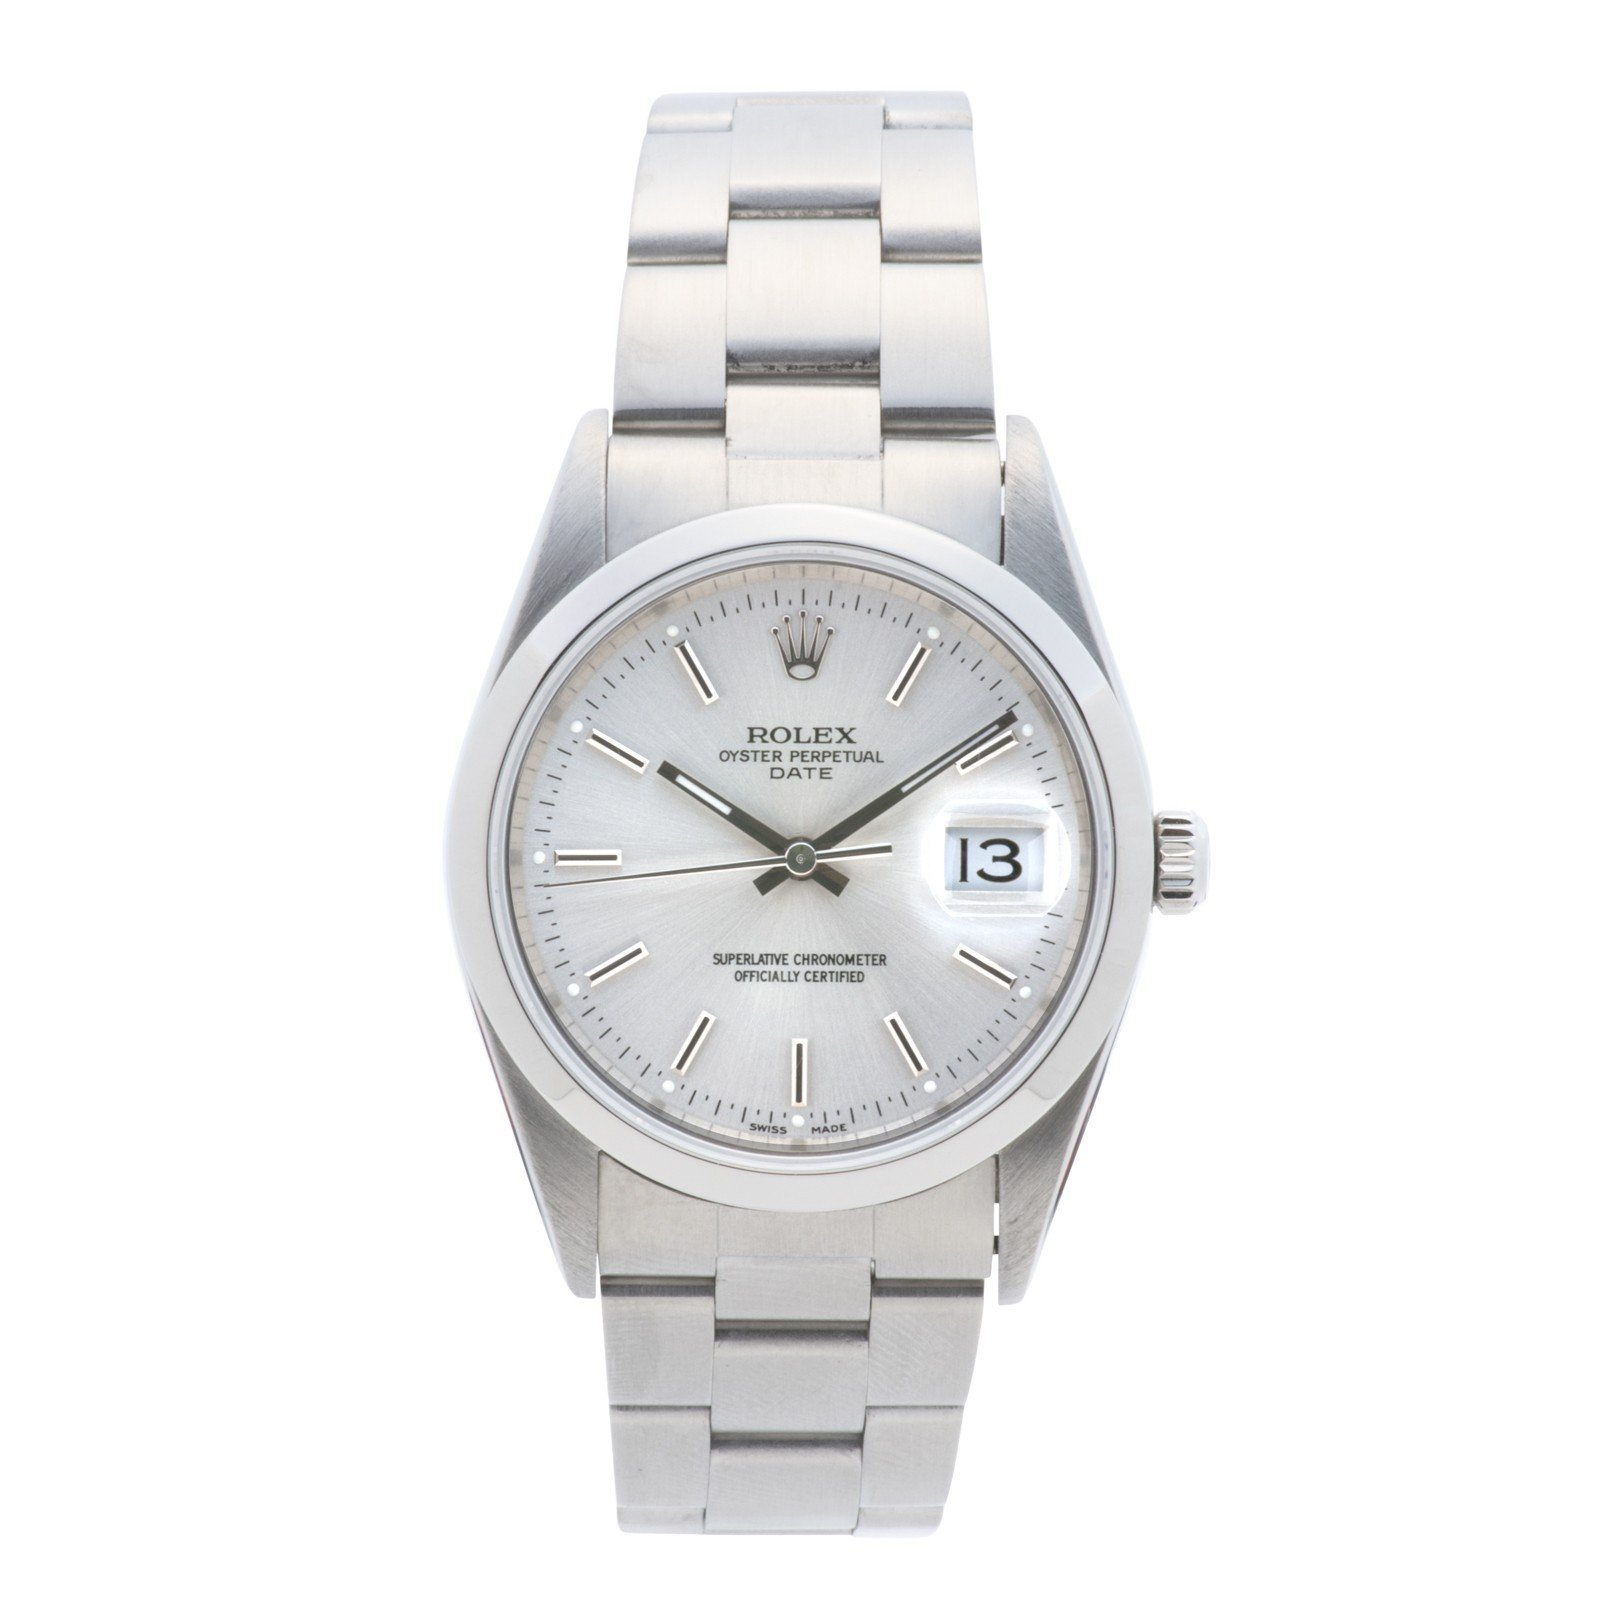 Rolex Datejust automatic-self-wind mens Watch 15200 (Certified Pre-owned)